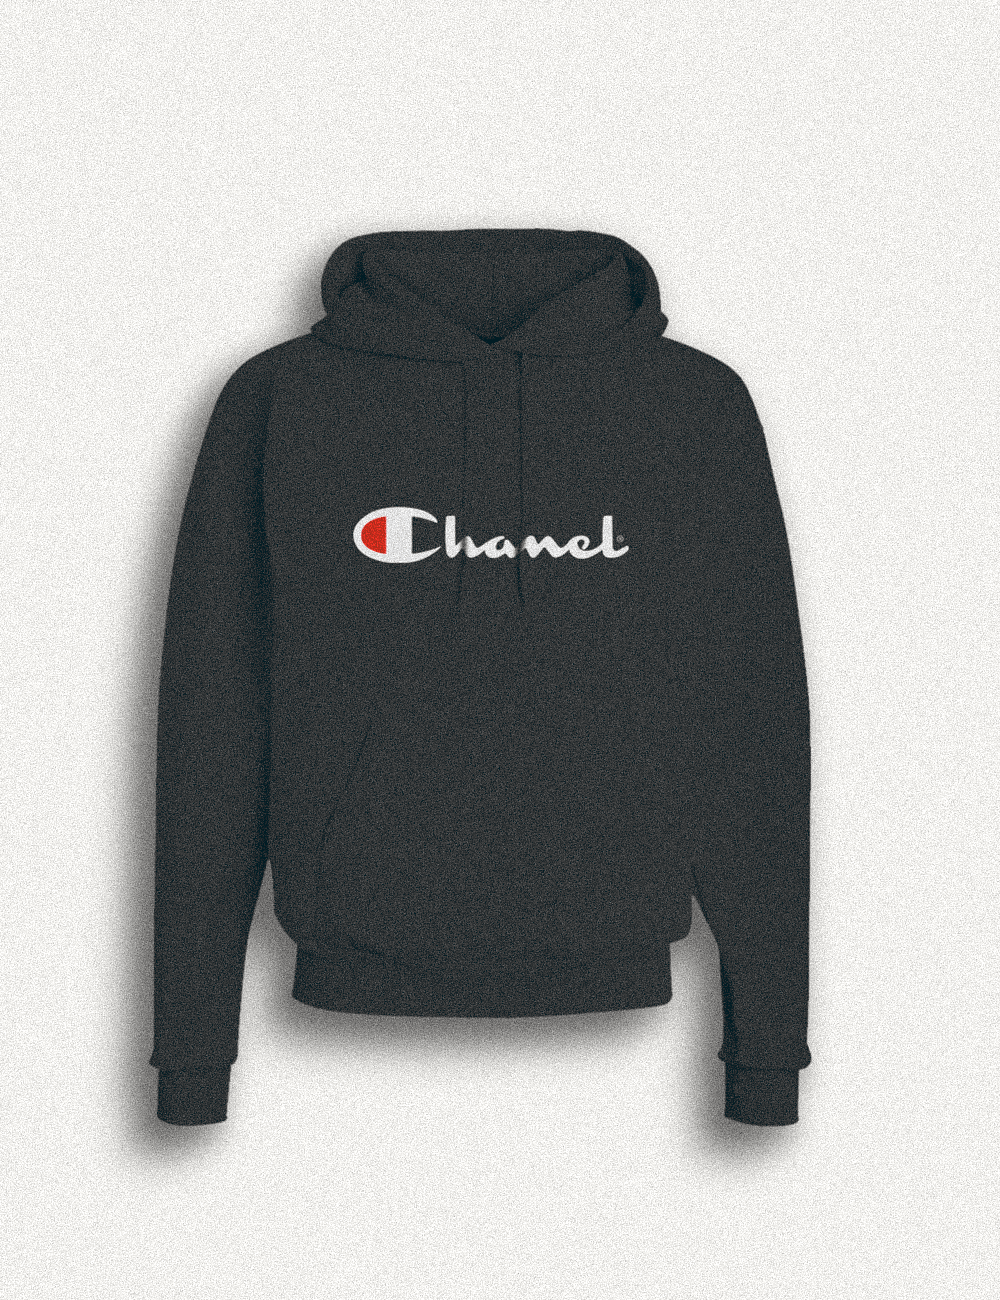 Hoodie - Champion / Chanel